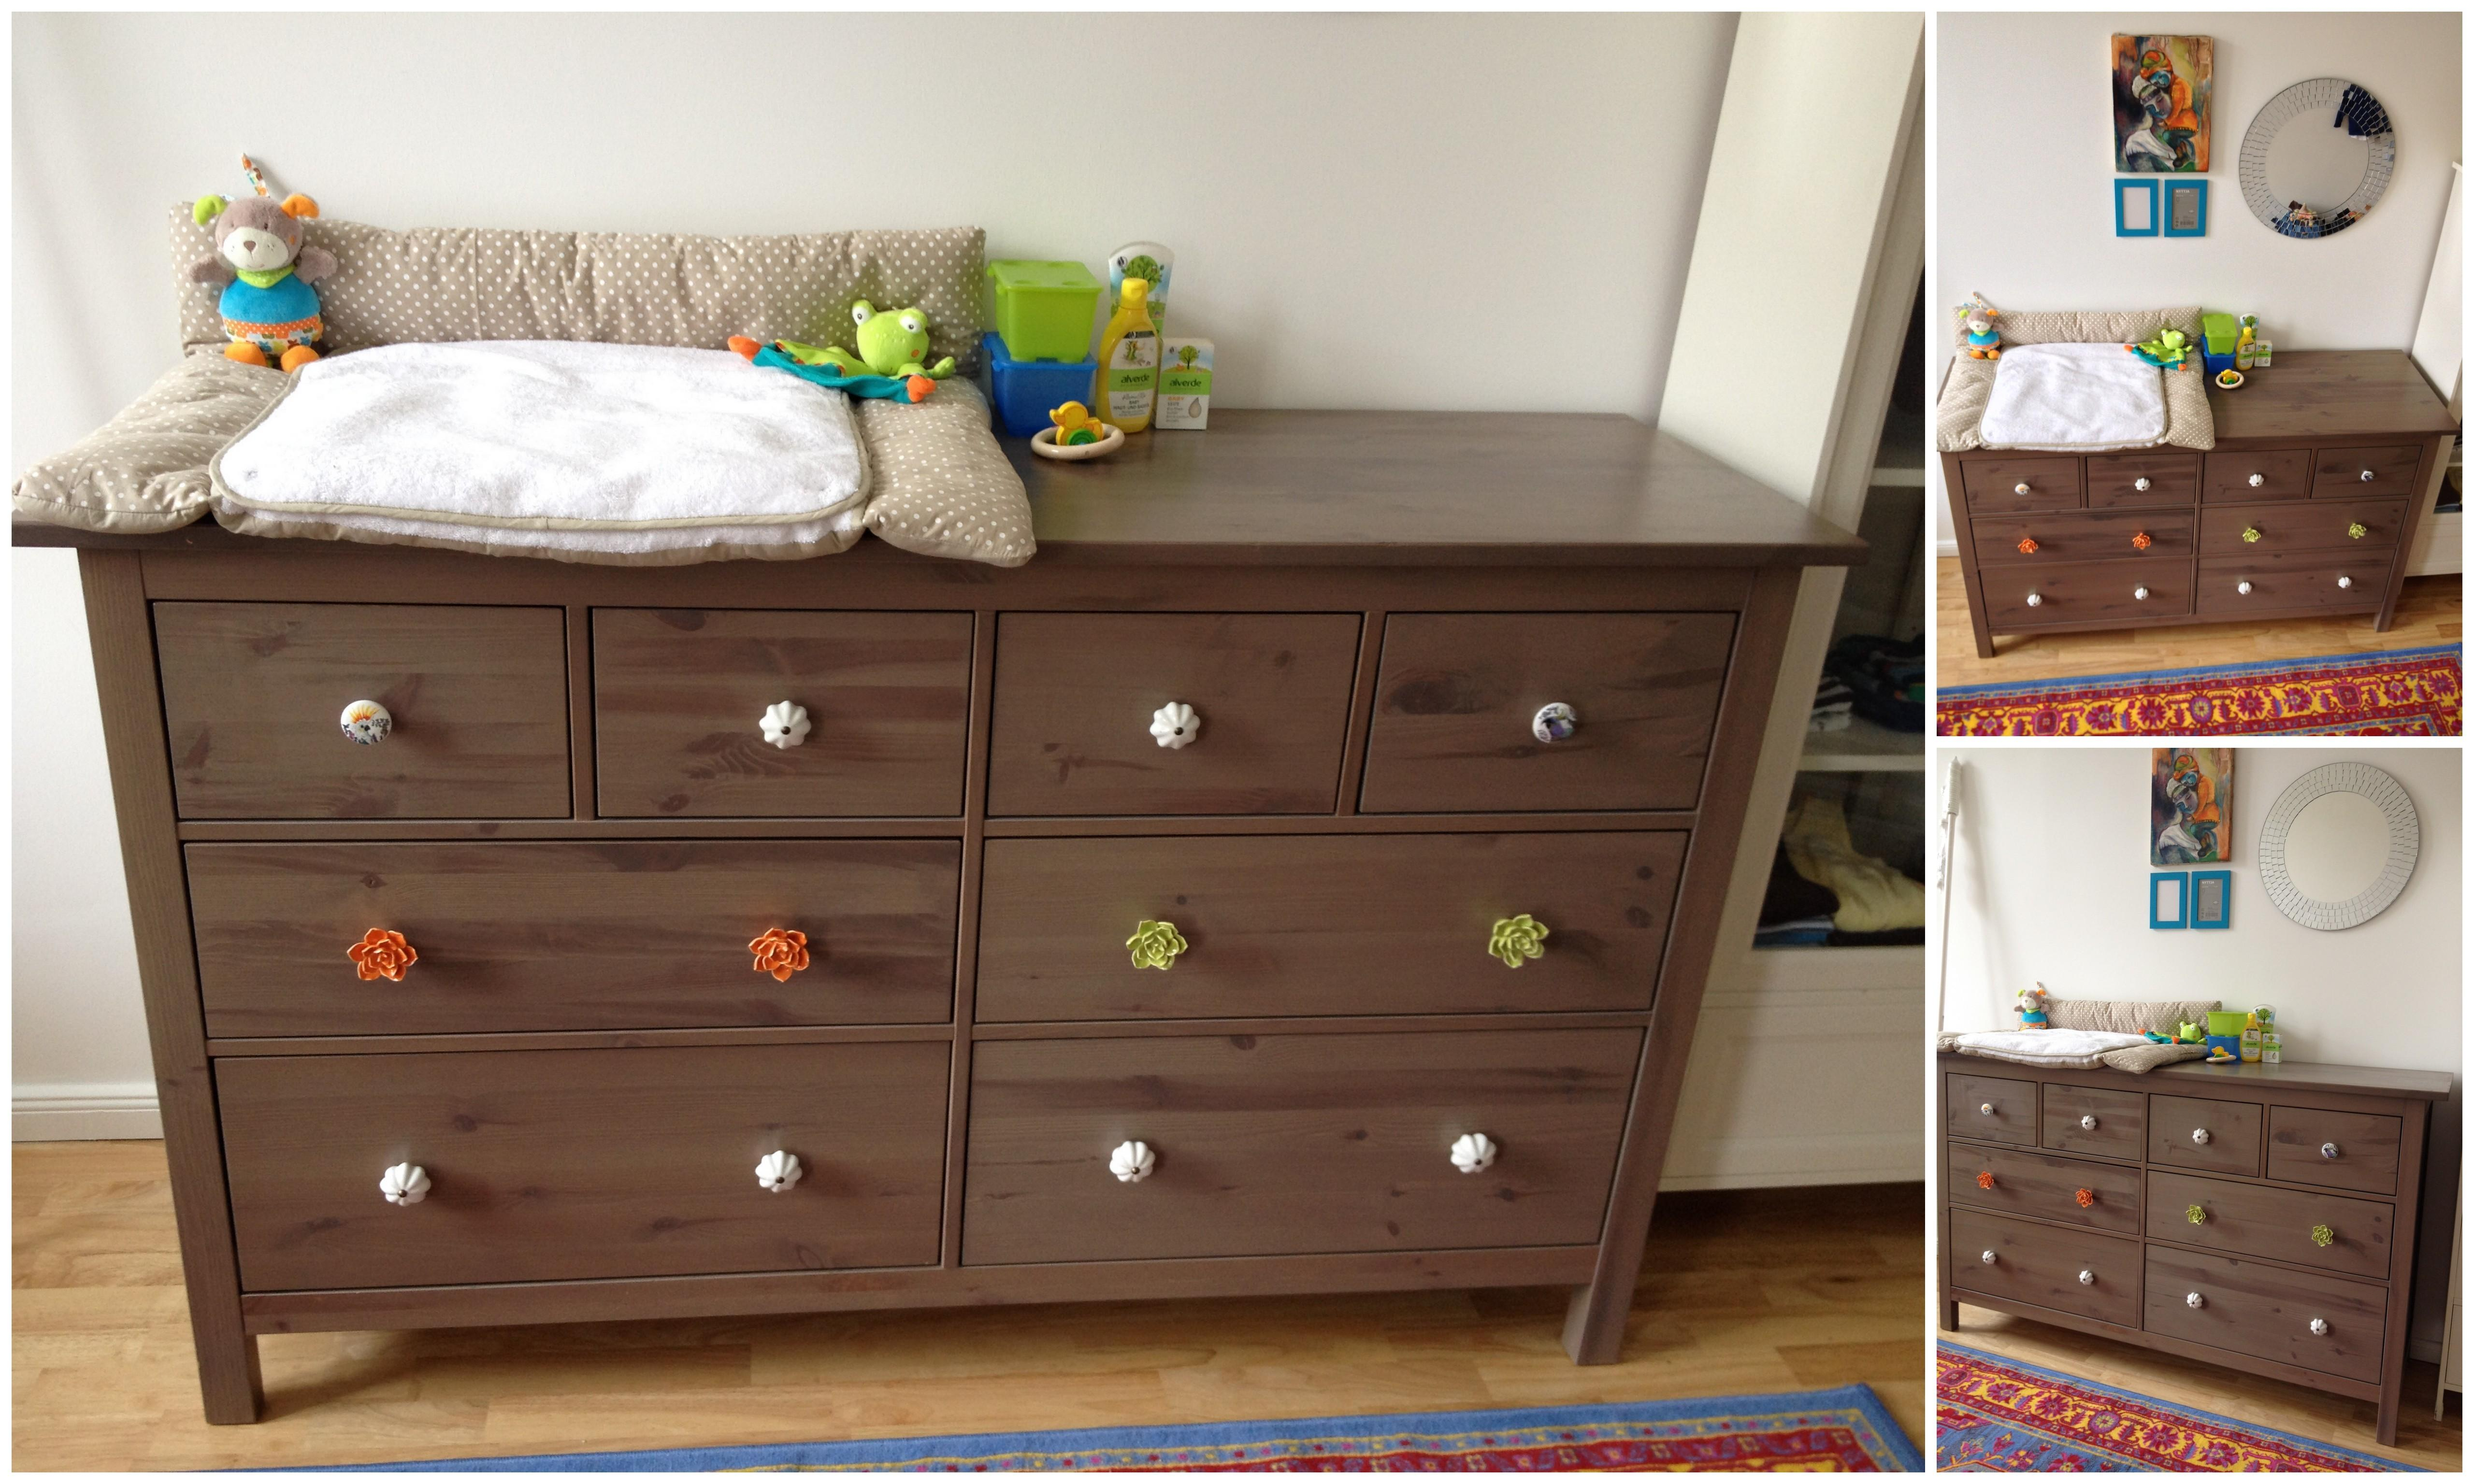 Diy Cherry Wood Dresser Changing Table Top Drawer